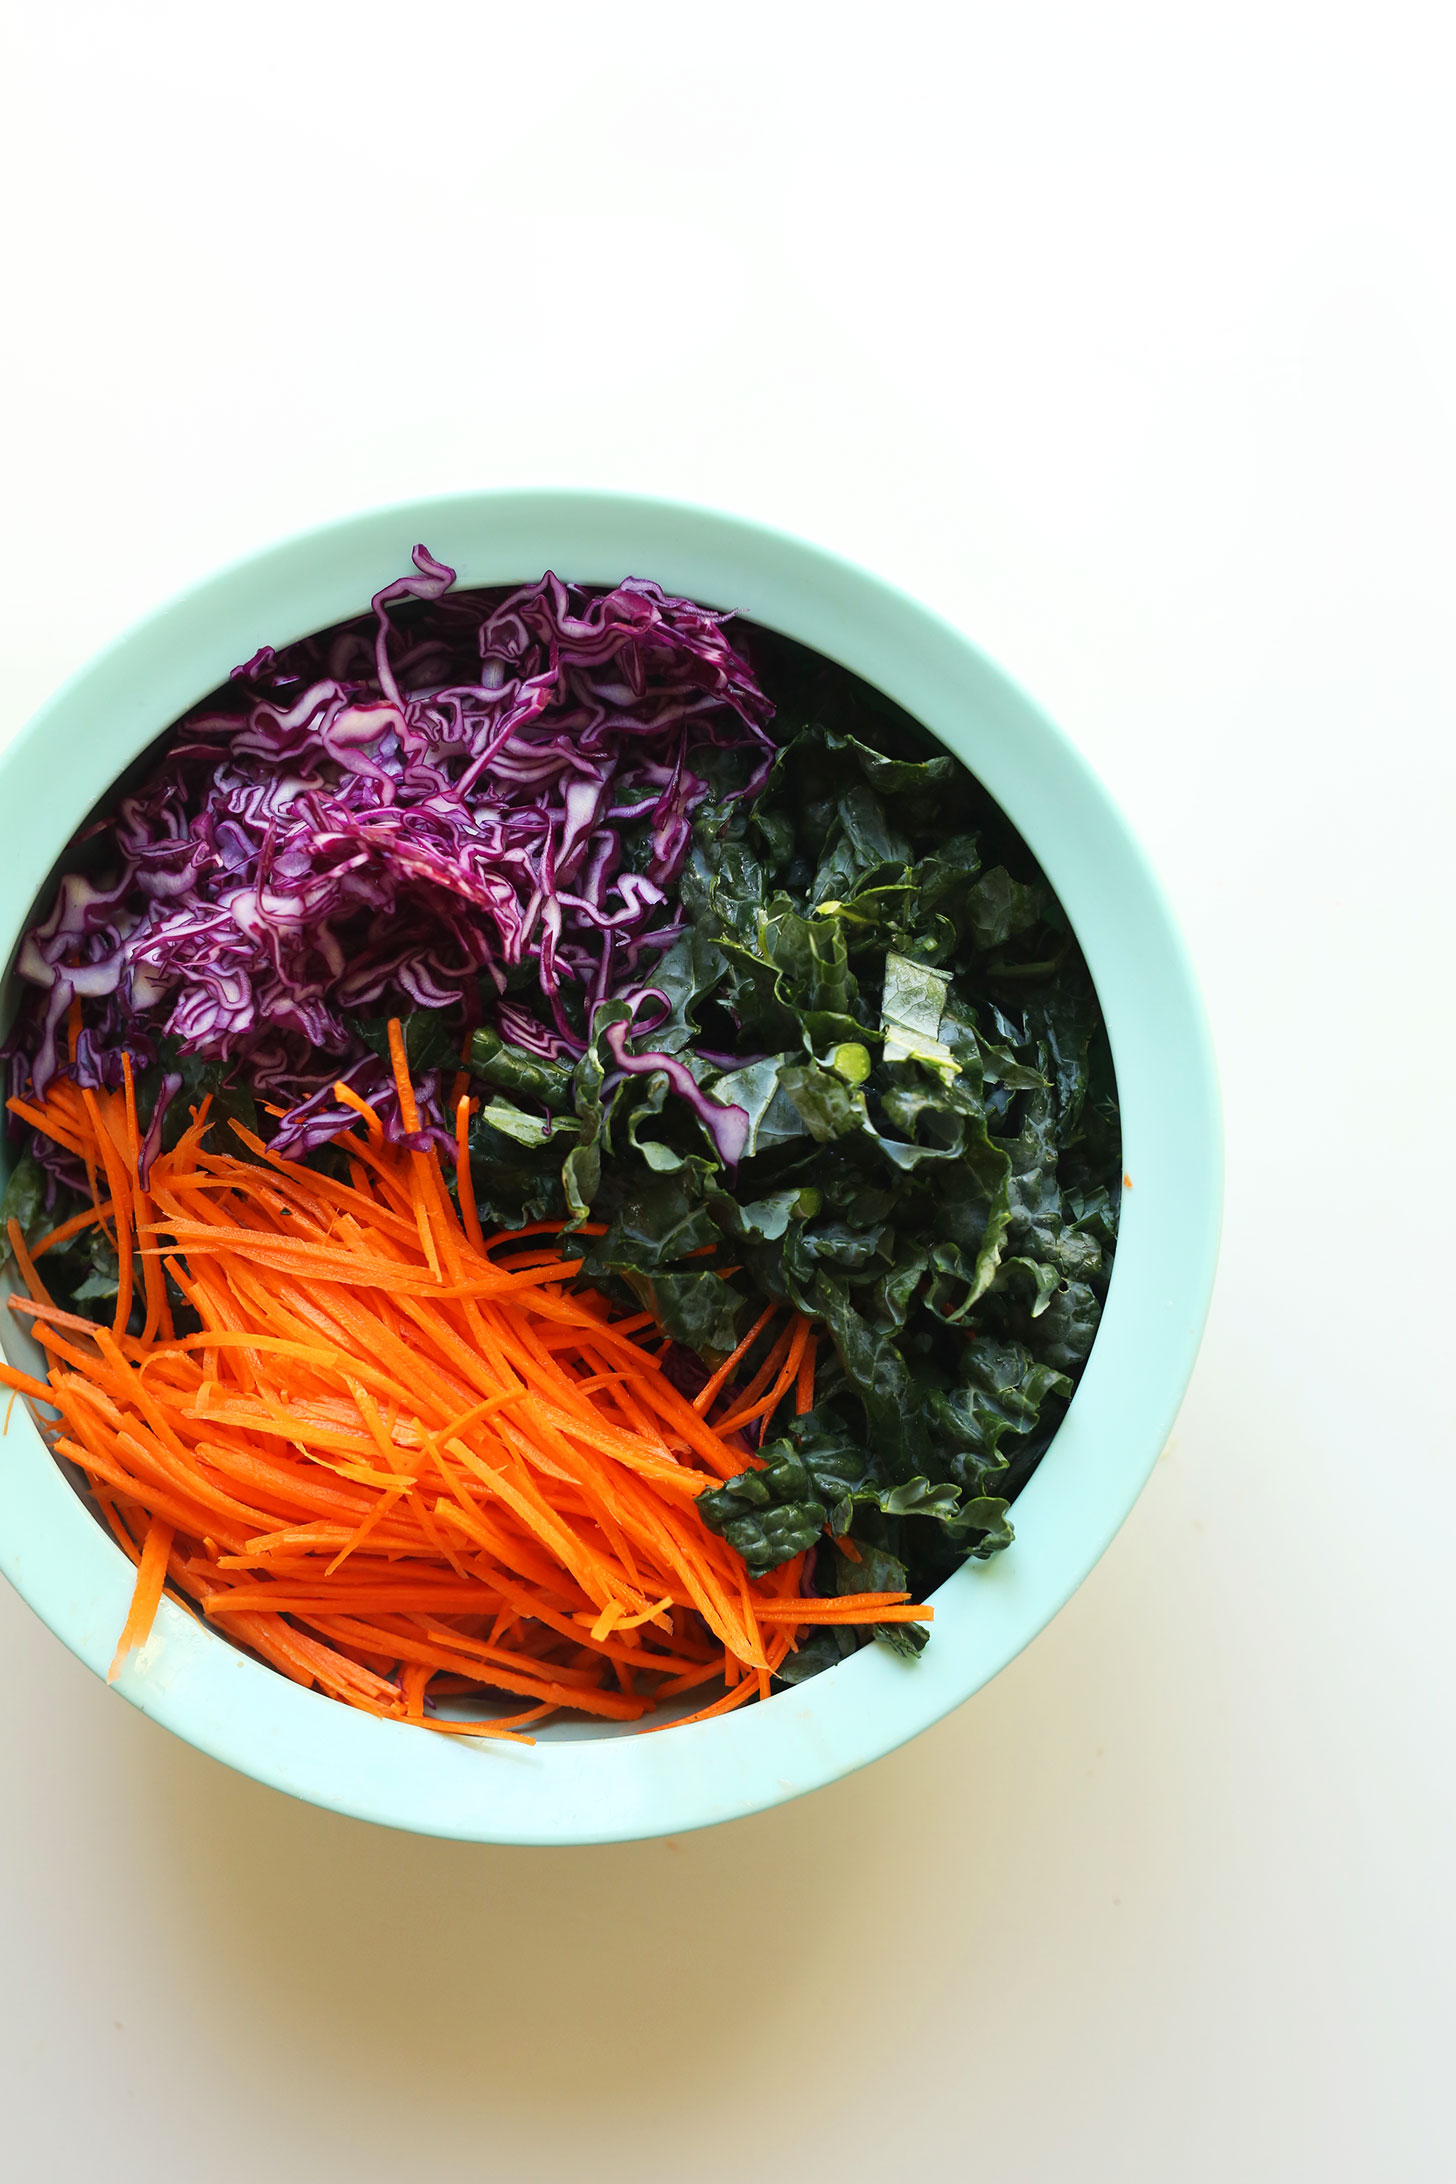 Big salad bowl with kale, red cabbage, and carrots